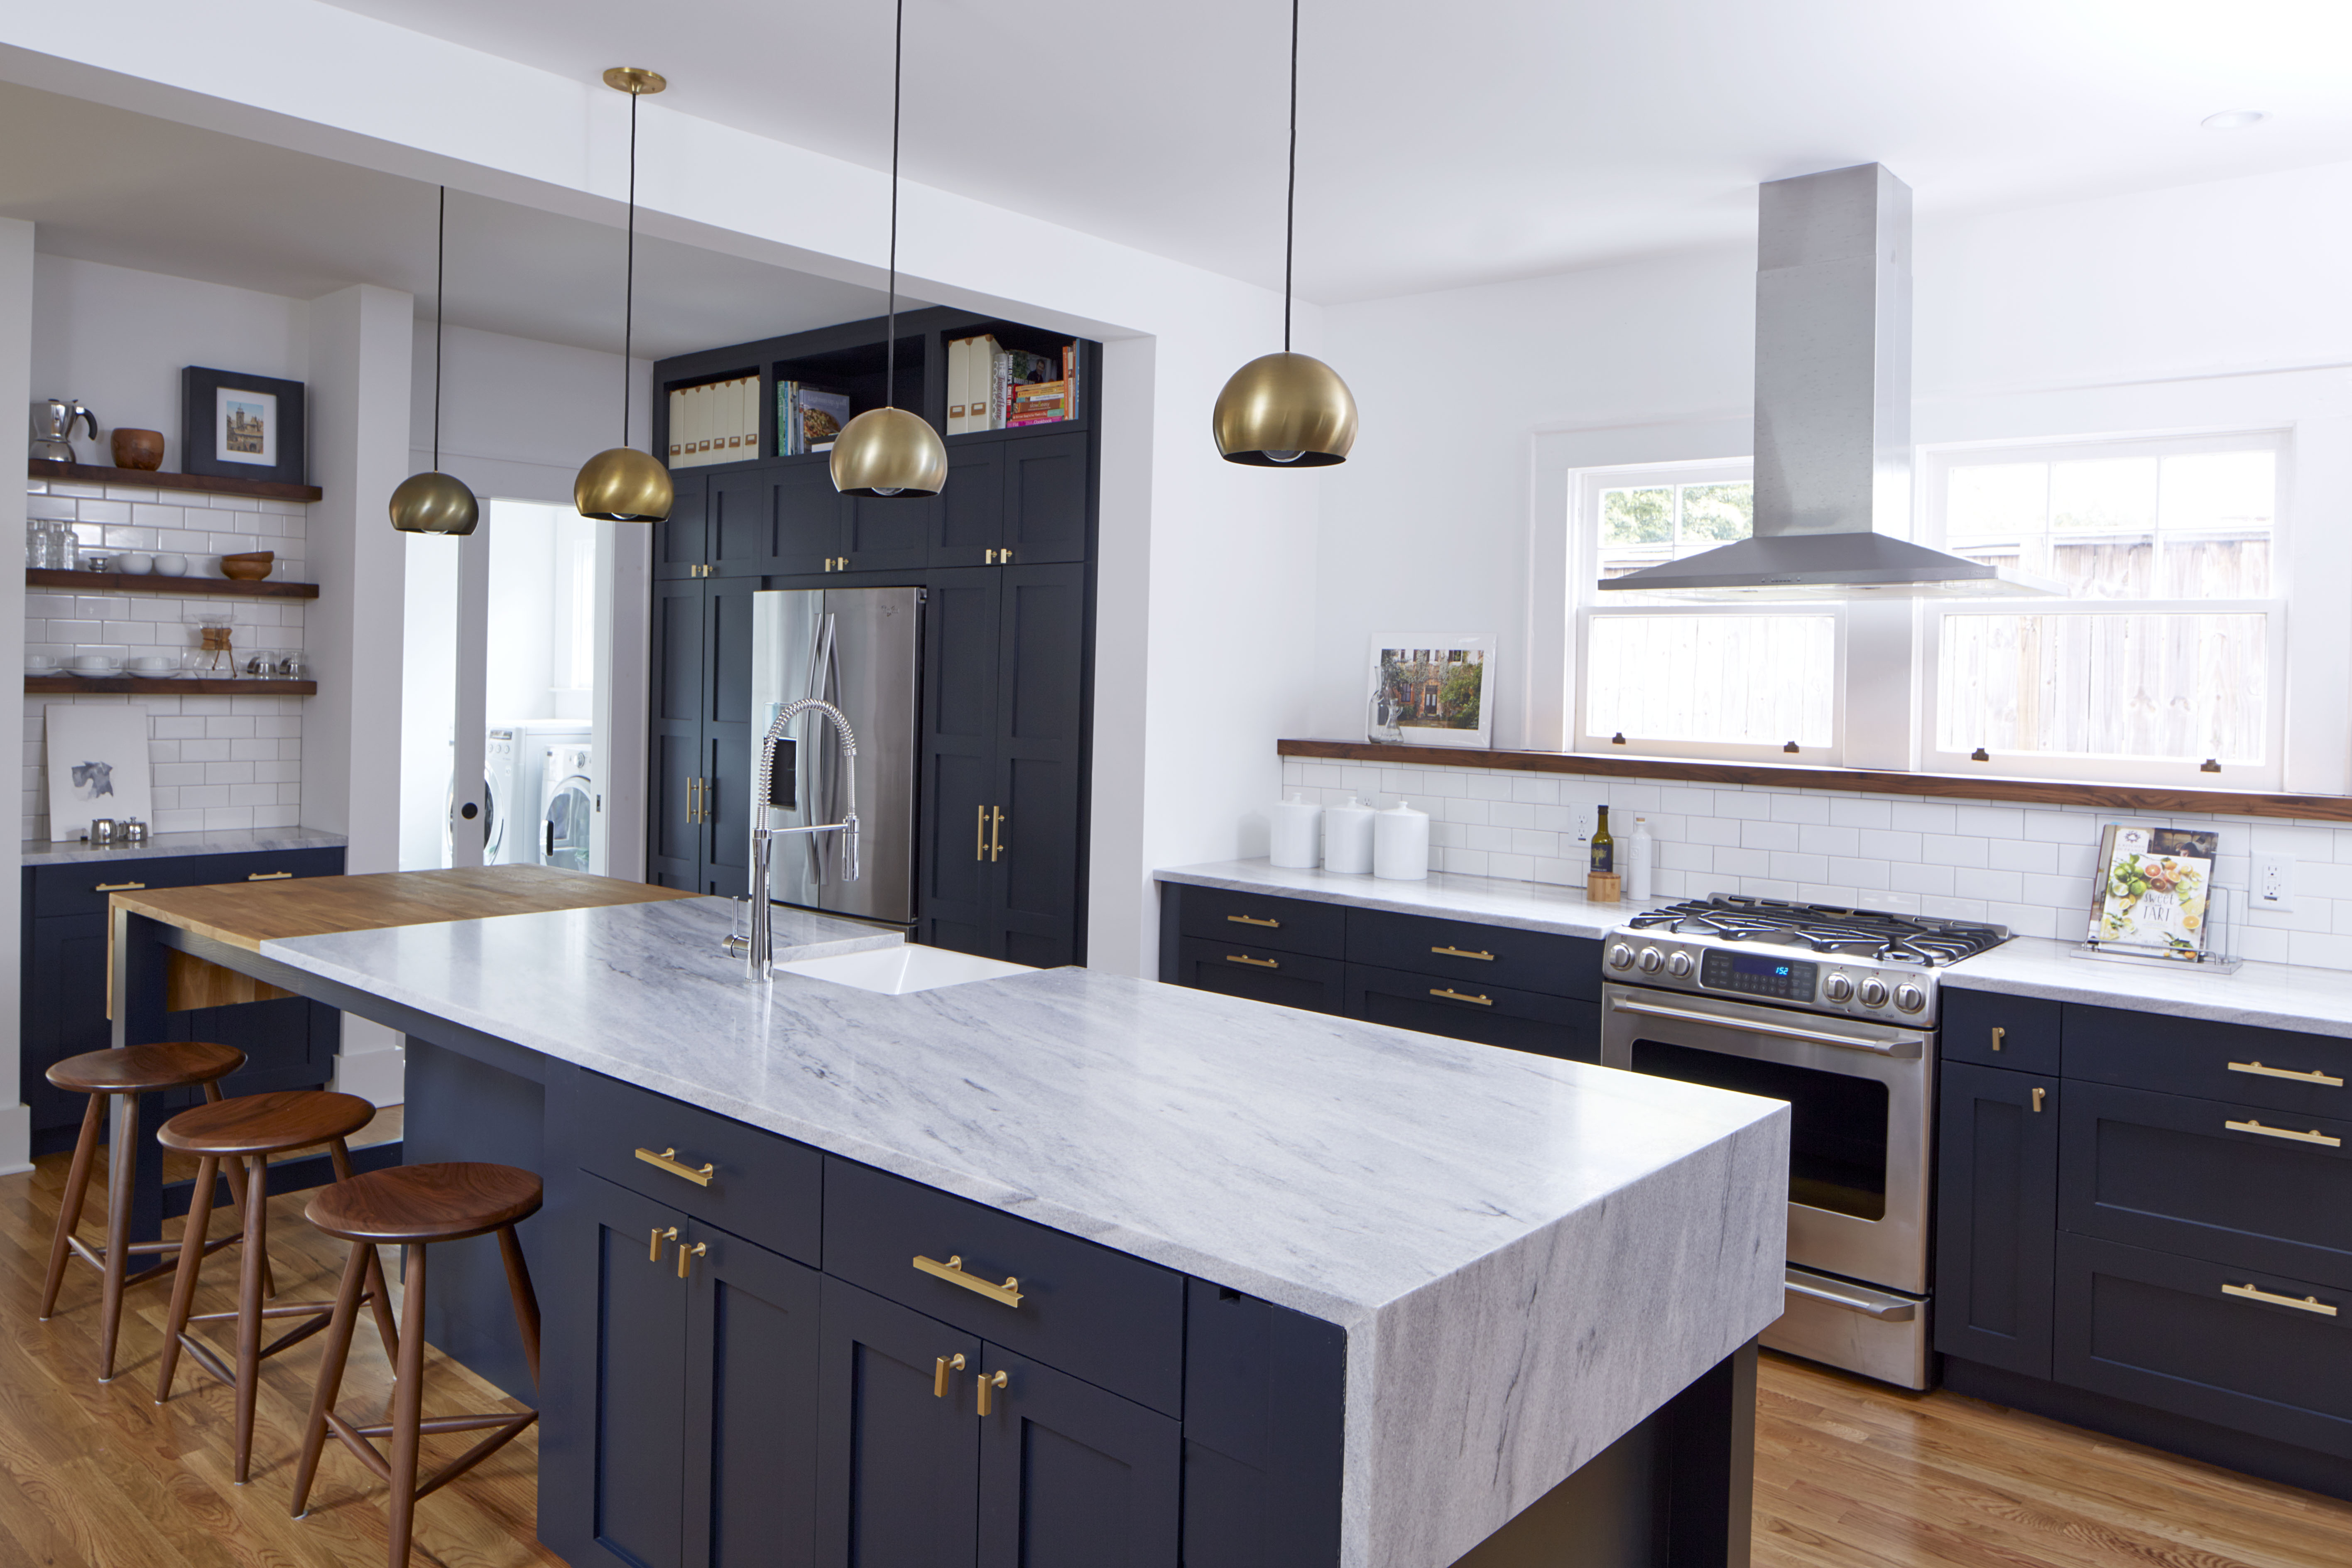 White Cherokee American Marble Kellen Minor Kitchen 7.